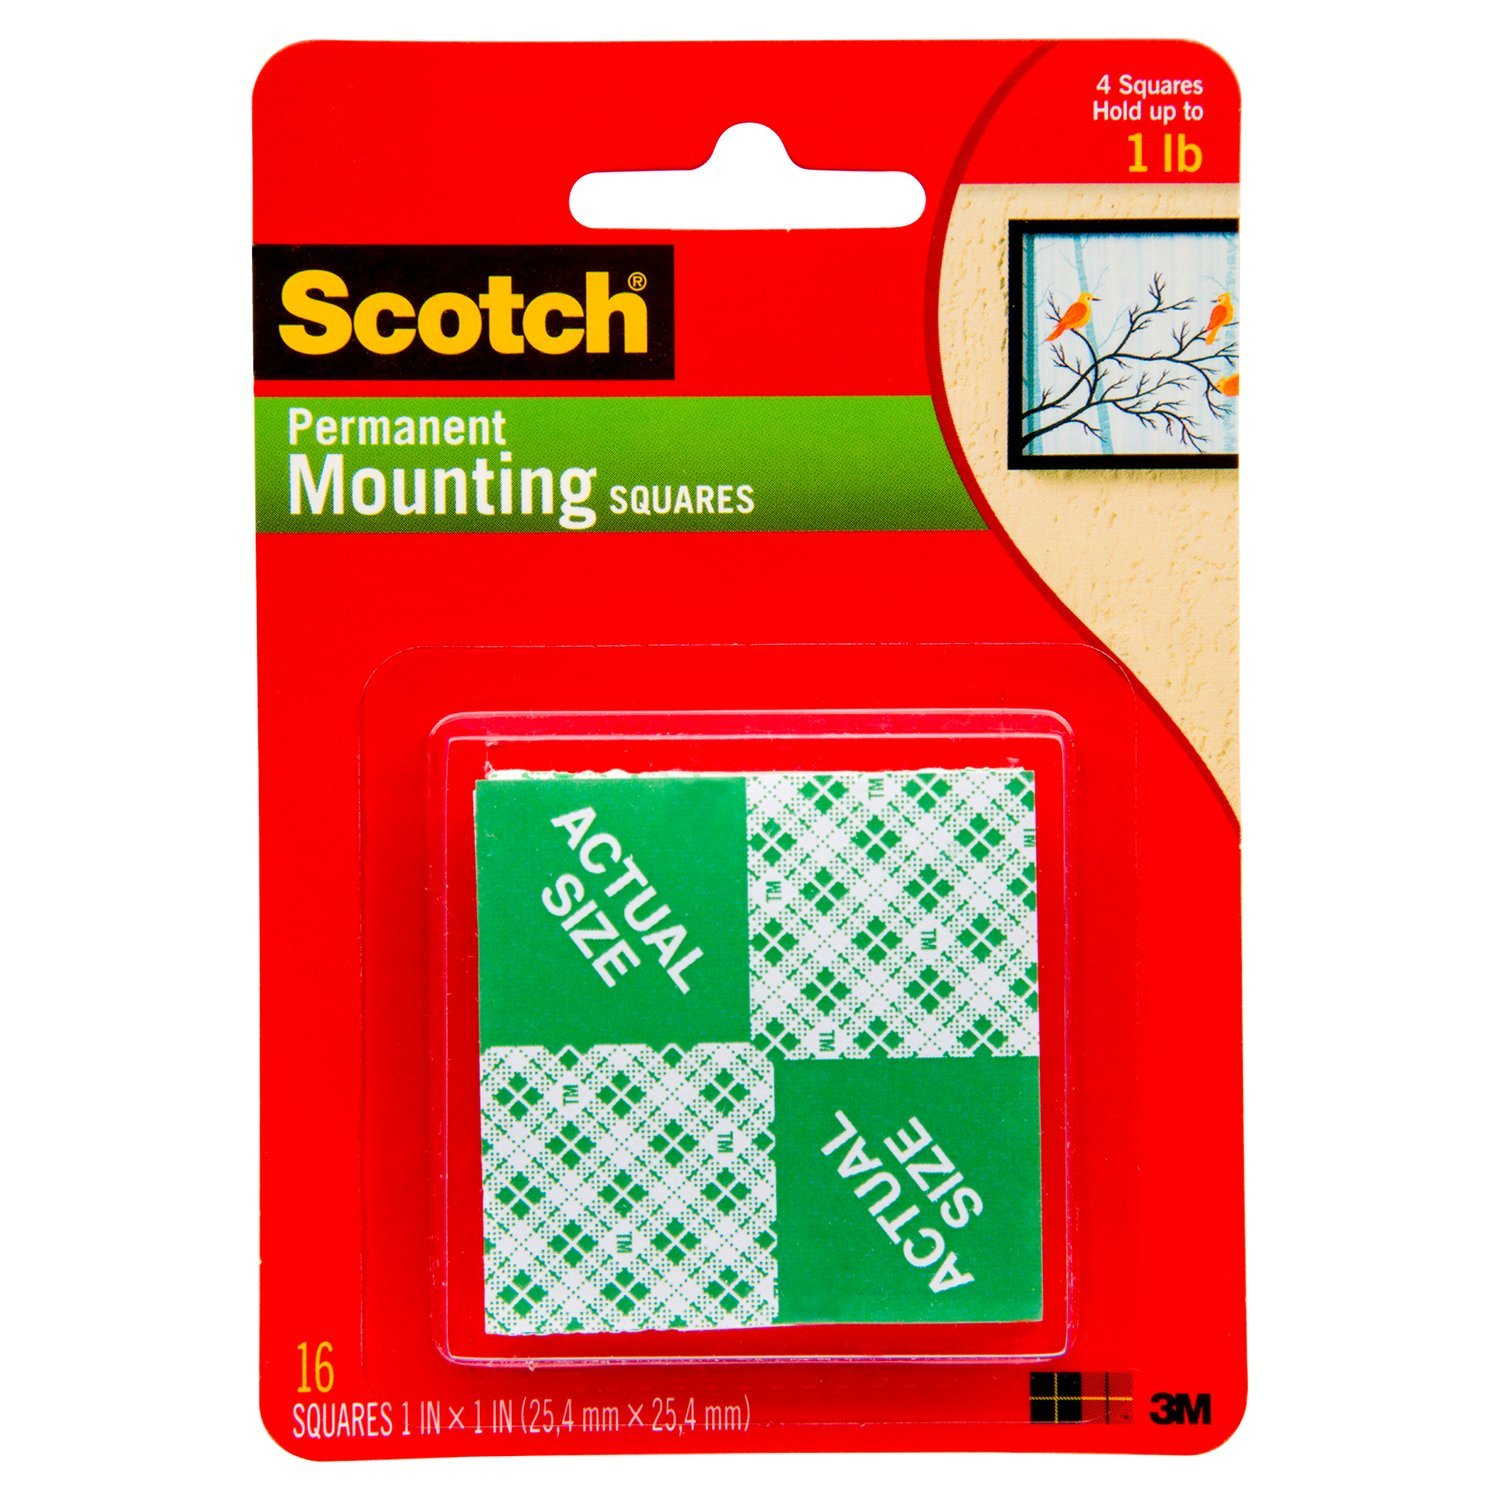 3M Scotch 111 Heavy Duty 1-Inch Mounting Squares, 16-Squares, White